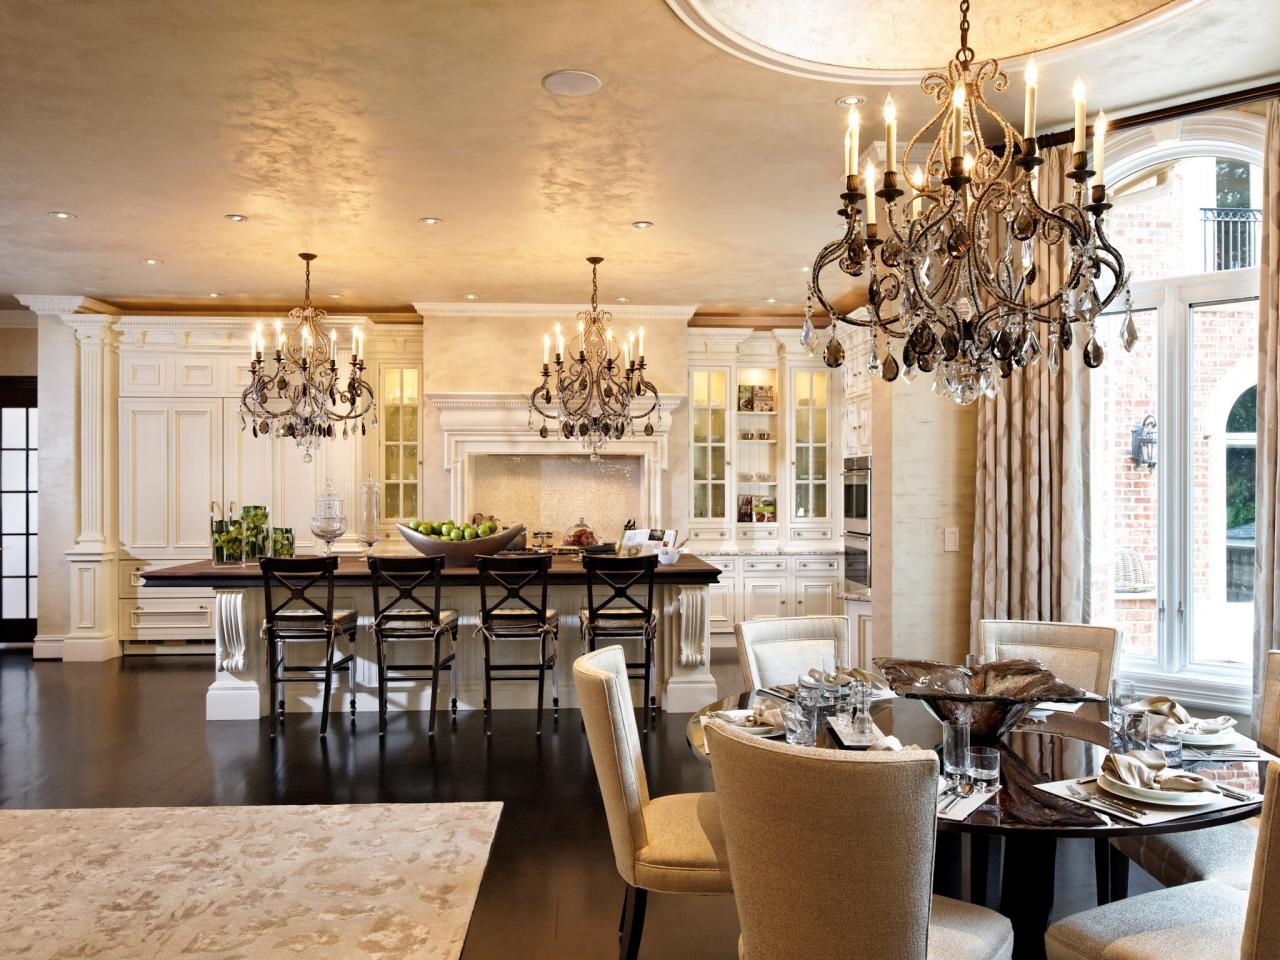 Gold Transitional Kitchen With Glamorous Chandelier Lights